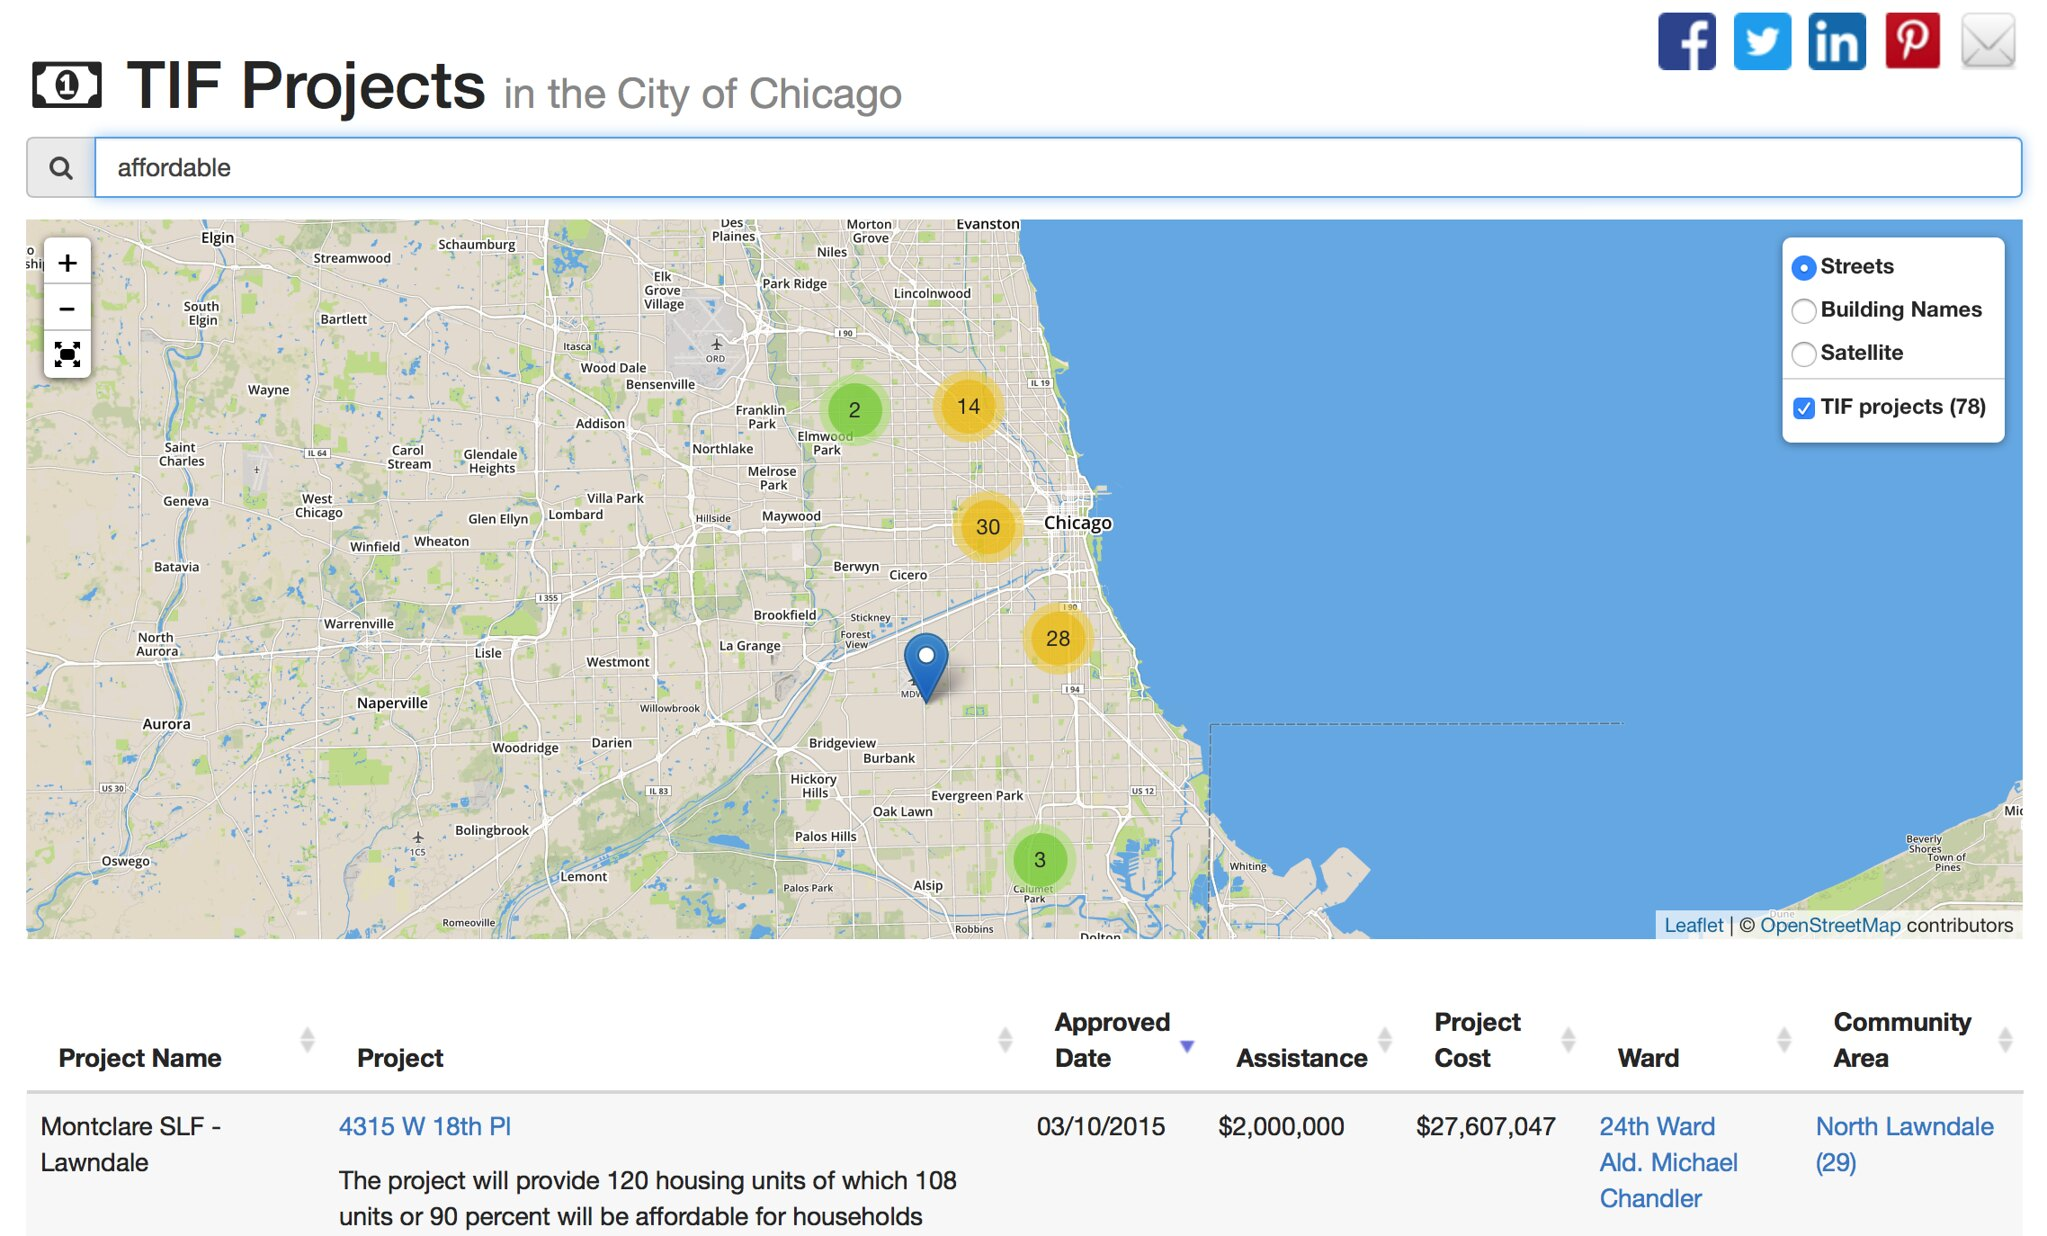 Chicago Cityscape's TIF Projects map